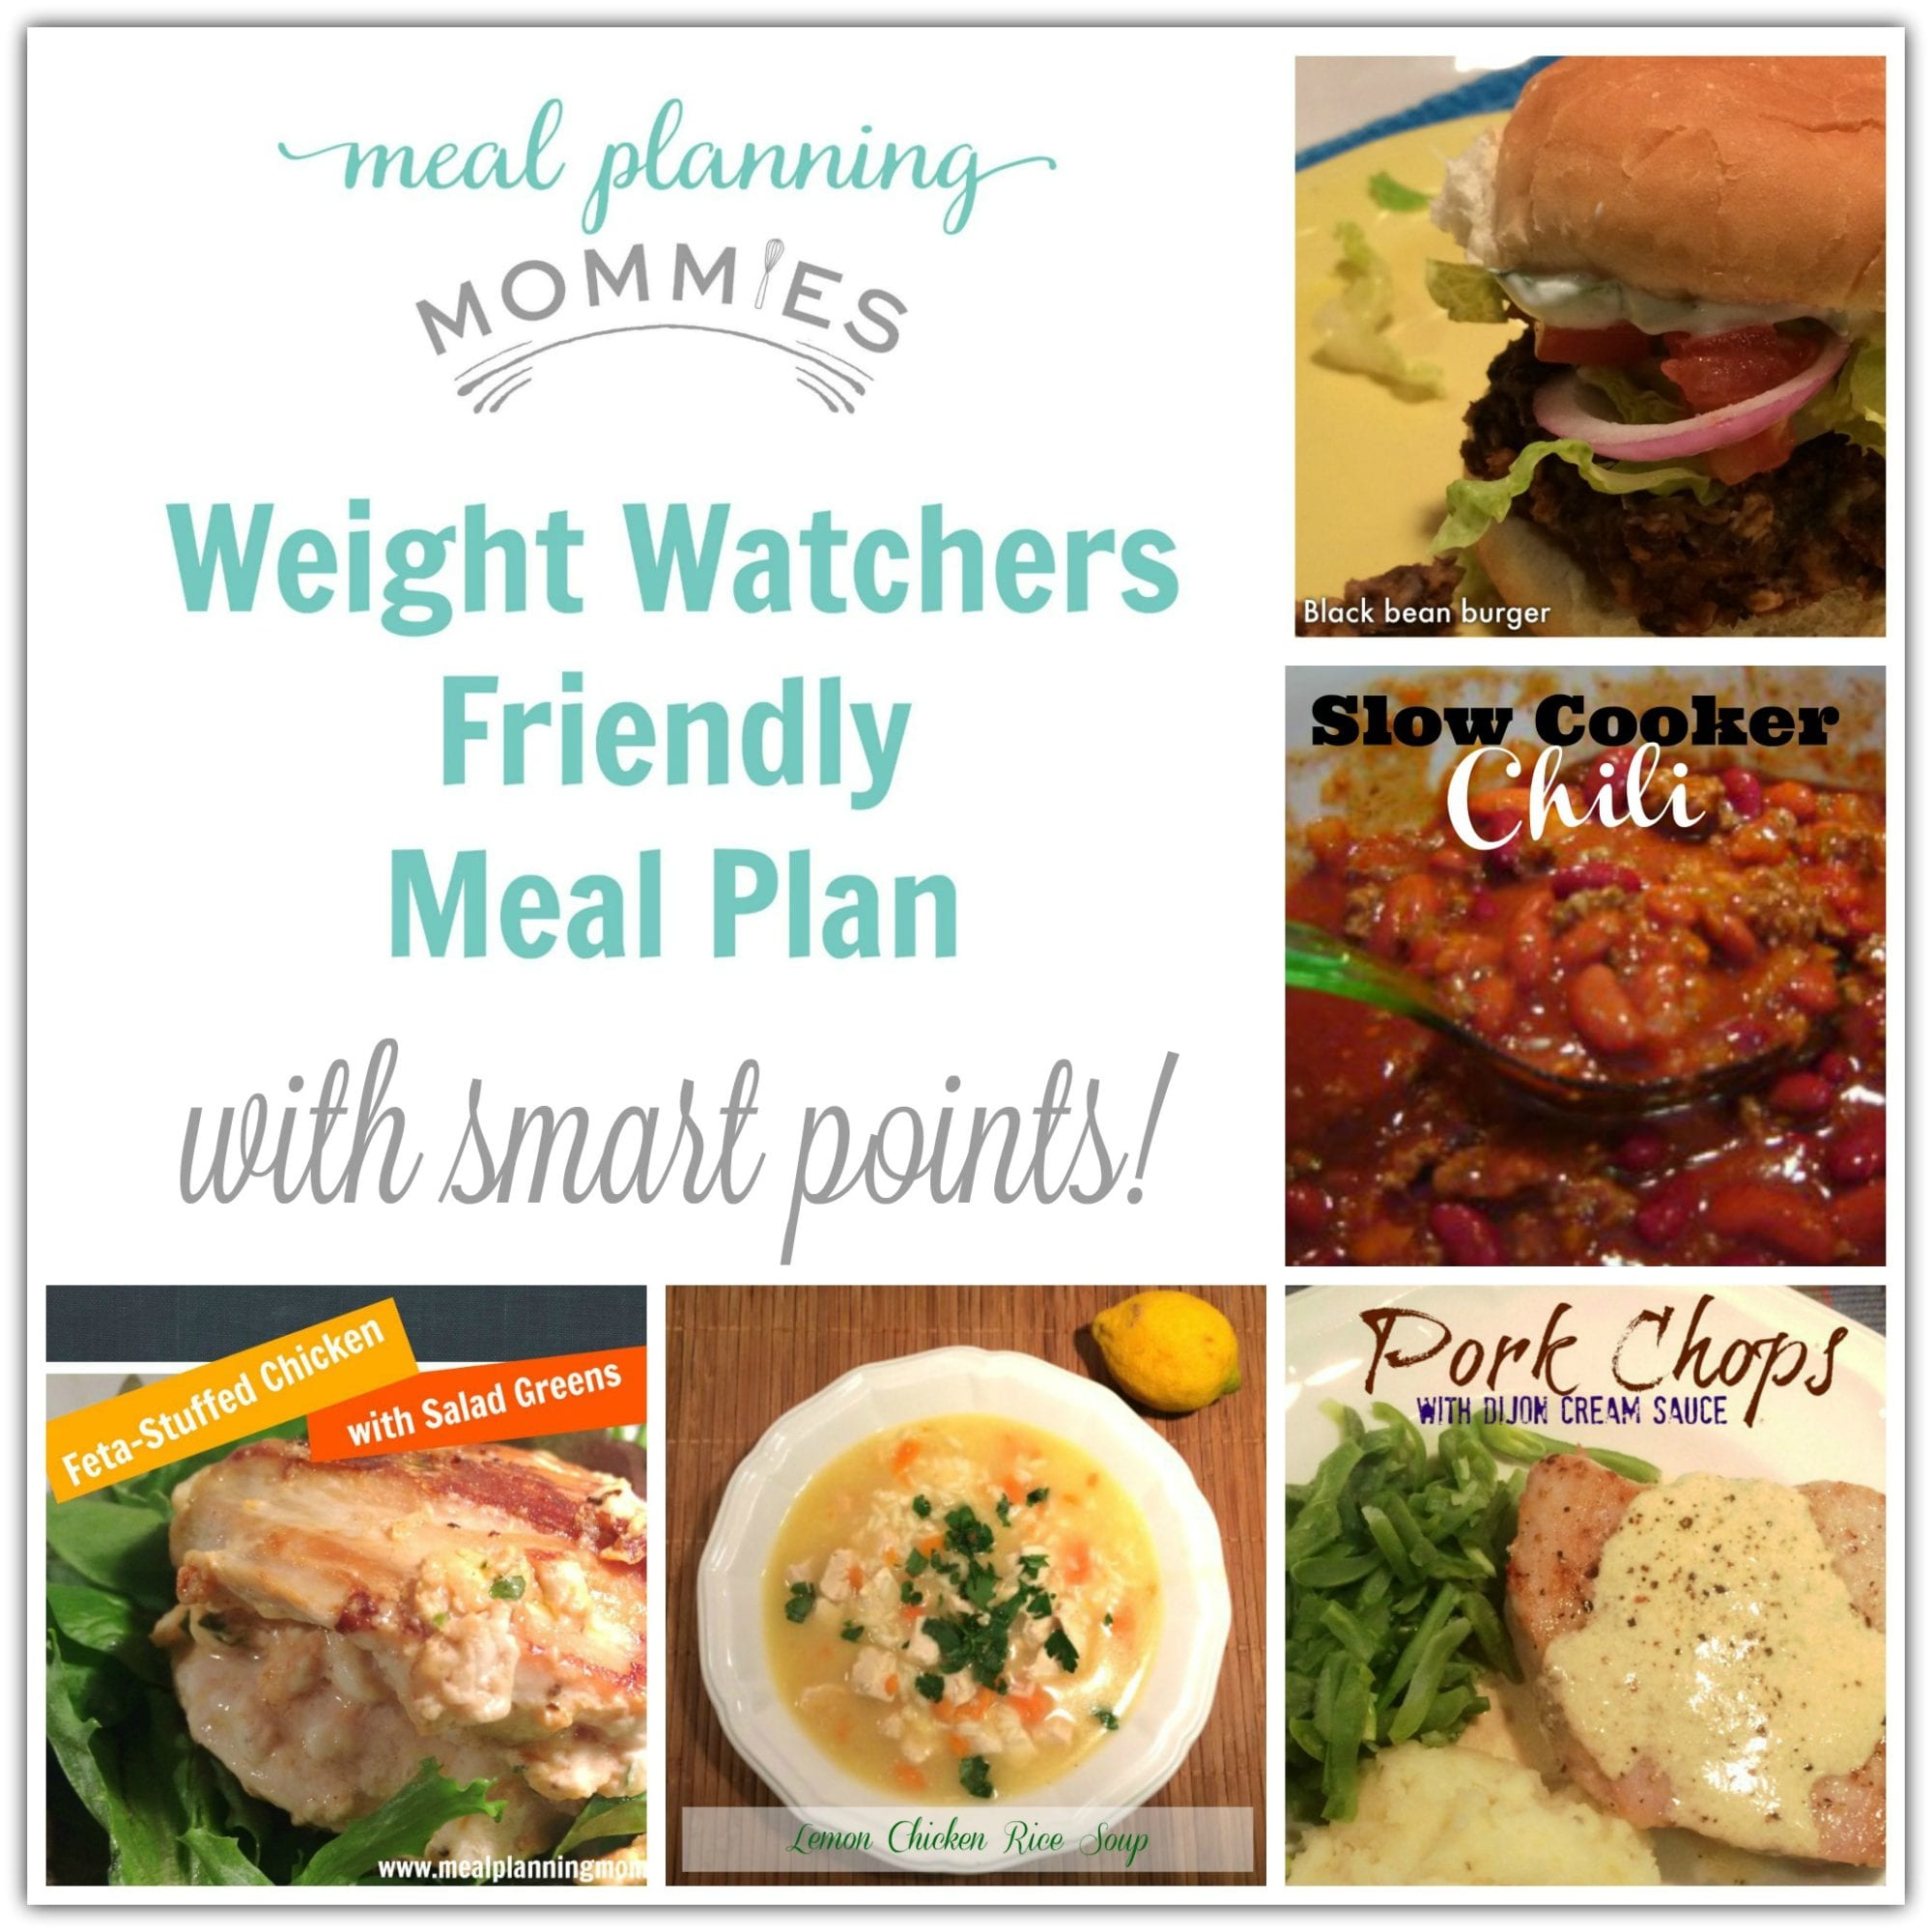 weight watcher friendly meal plan with smart points planning mommies